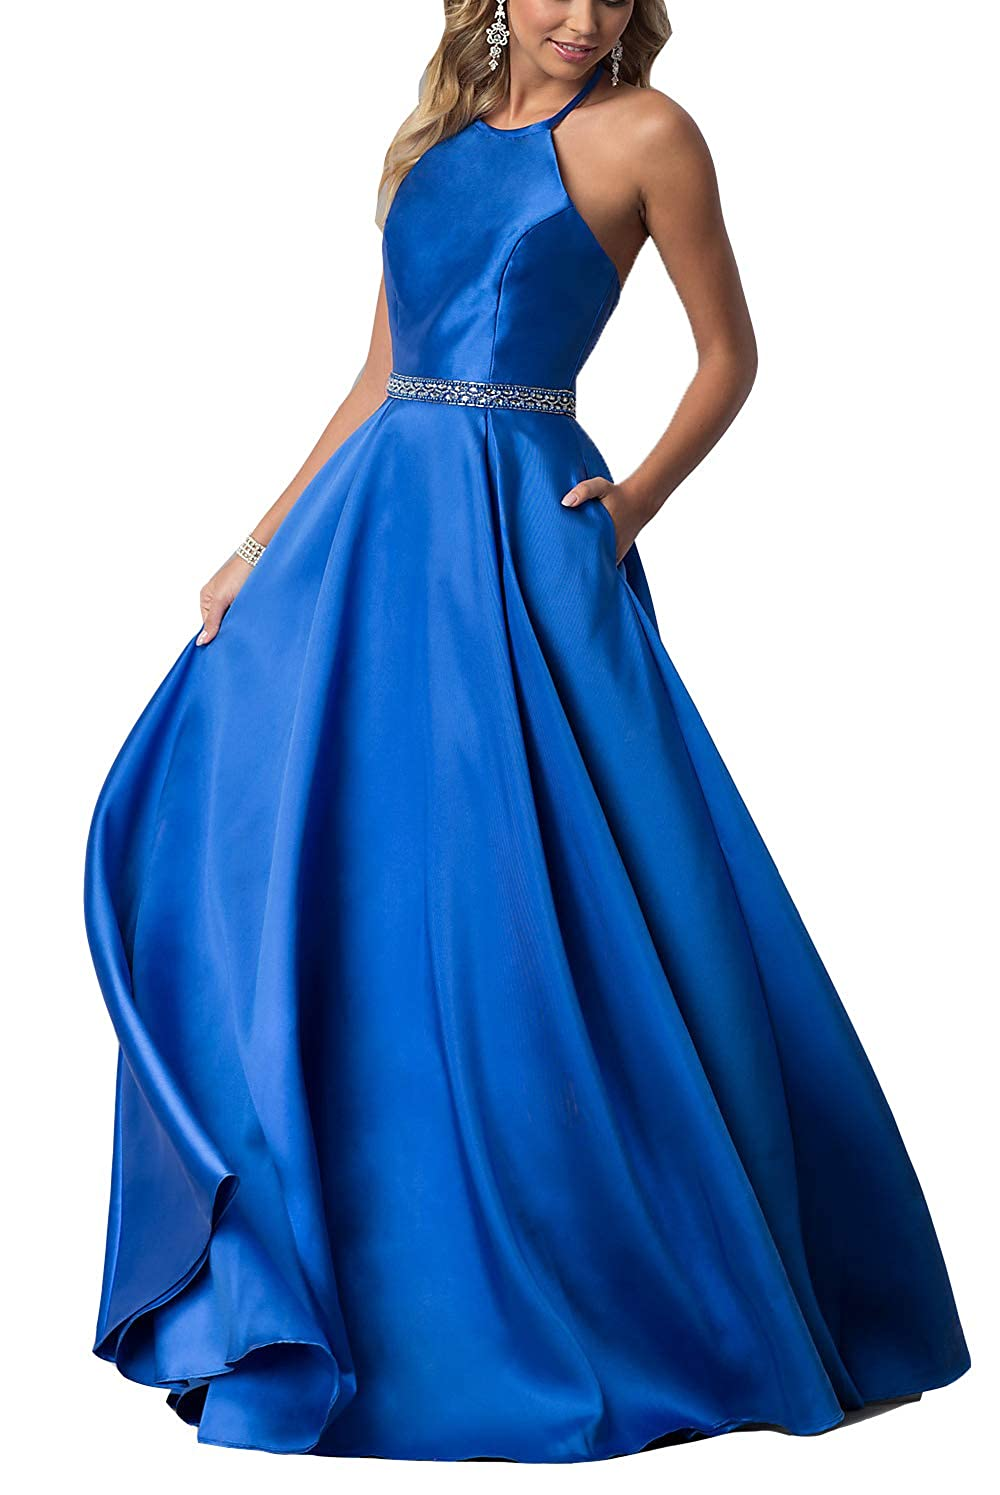 bluee YMSHA Women's Halter Prom Dresses with Pockets Long Satin Crystal Evening Formal Gown O38PM